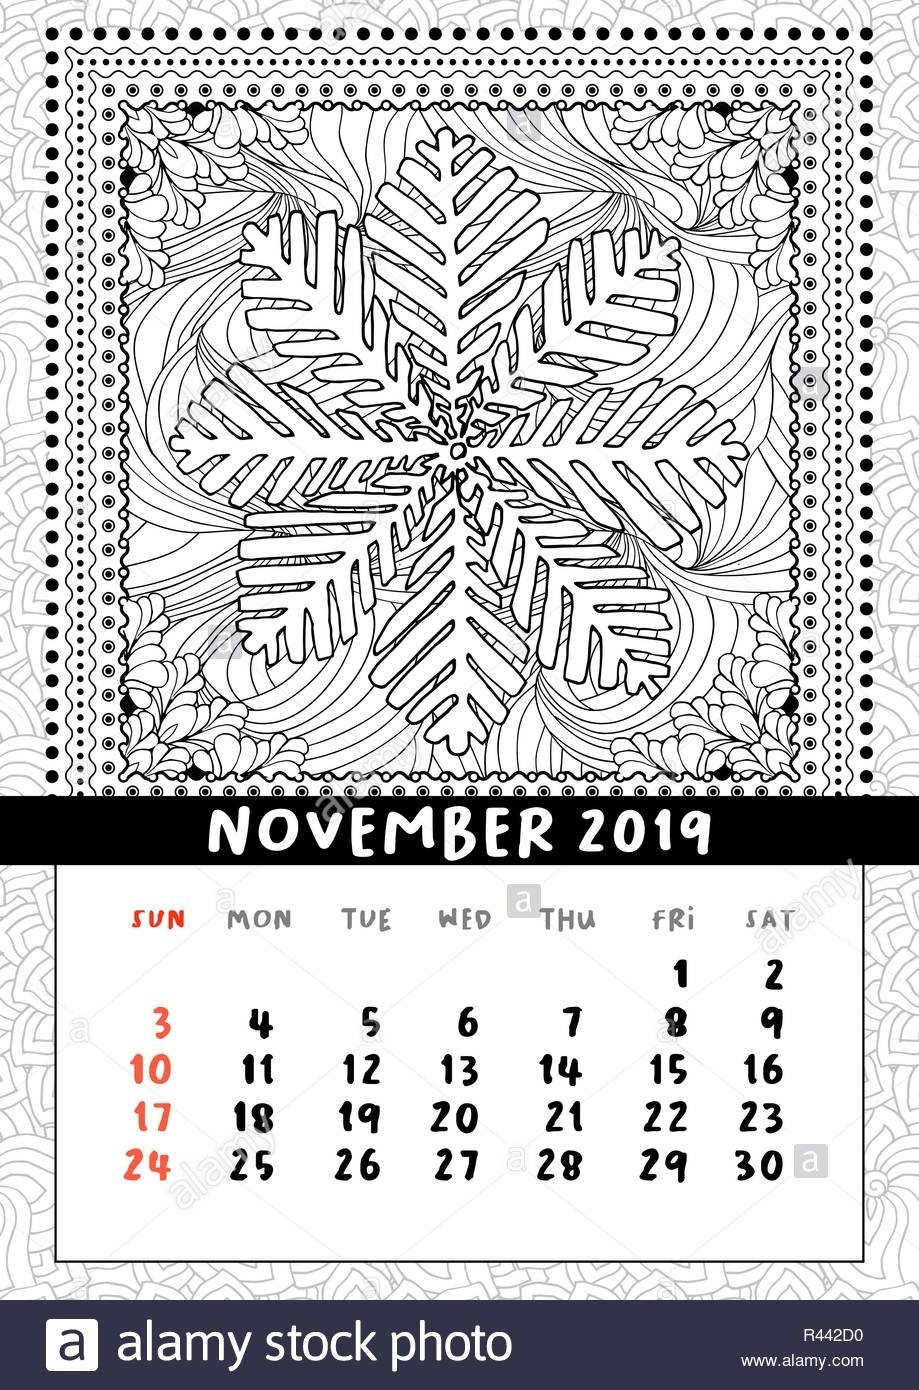 November Calender Stock Photos & November Calender Stock Images - Alamy with regard to Medroxyprogesterone Perpetual Calendar 12-14 Weeks